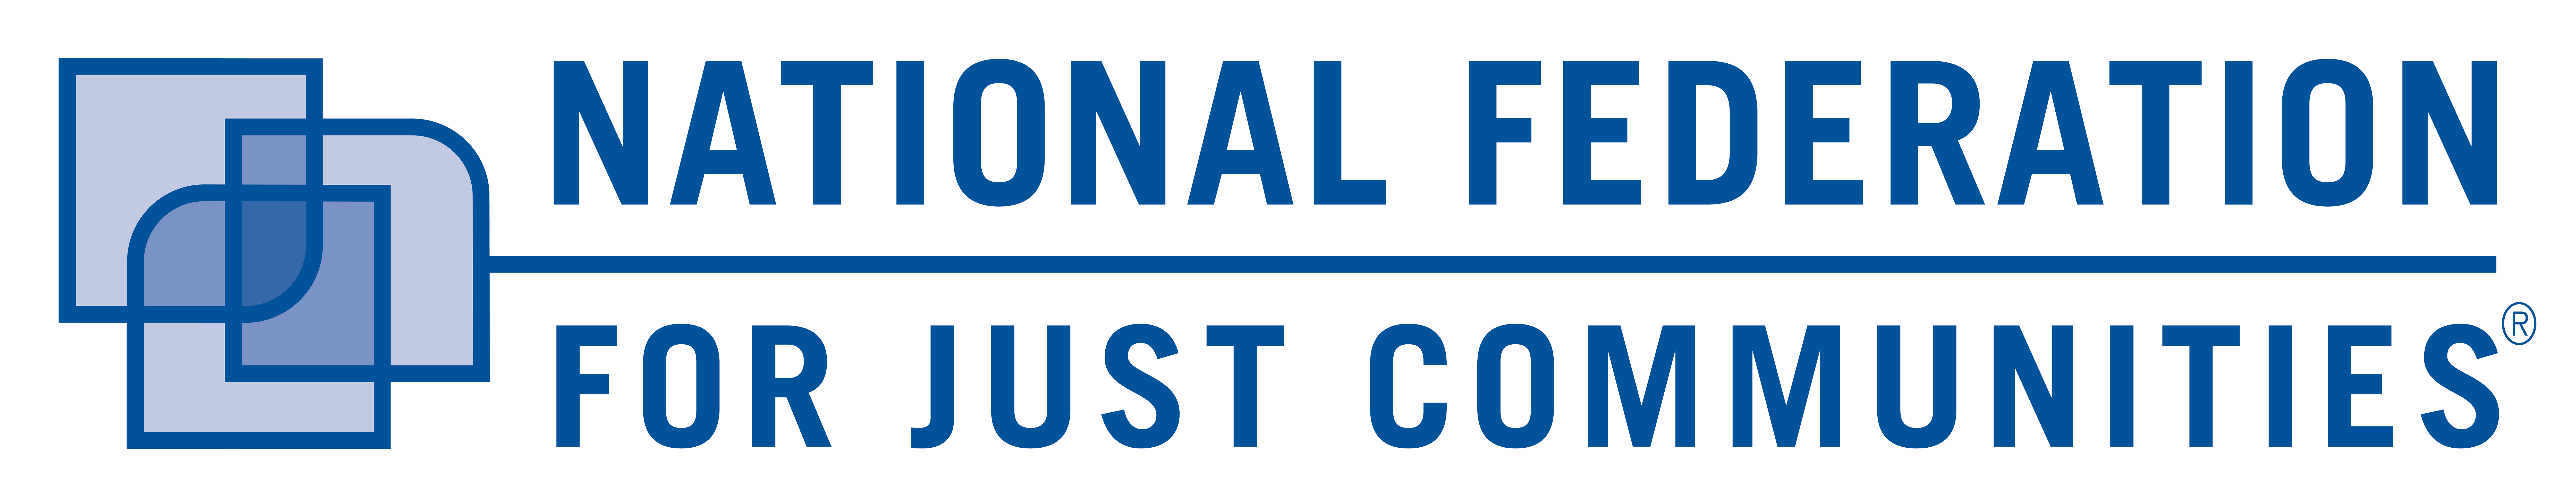 National Federation for Just Communities